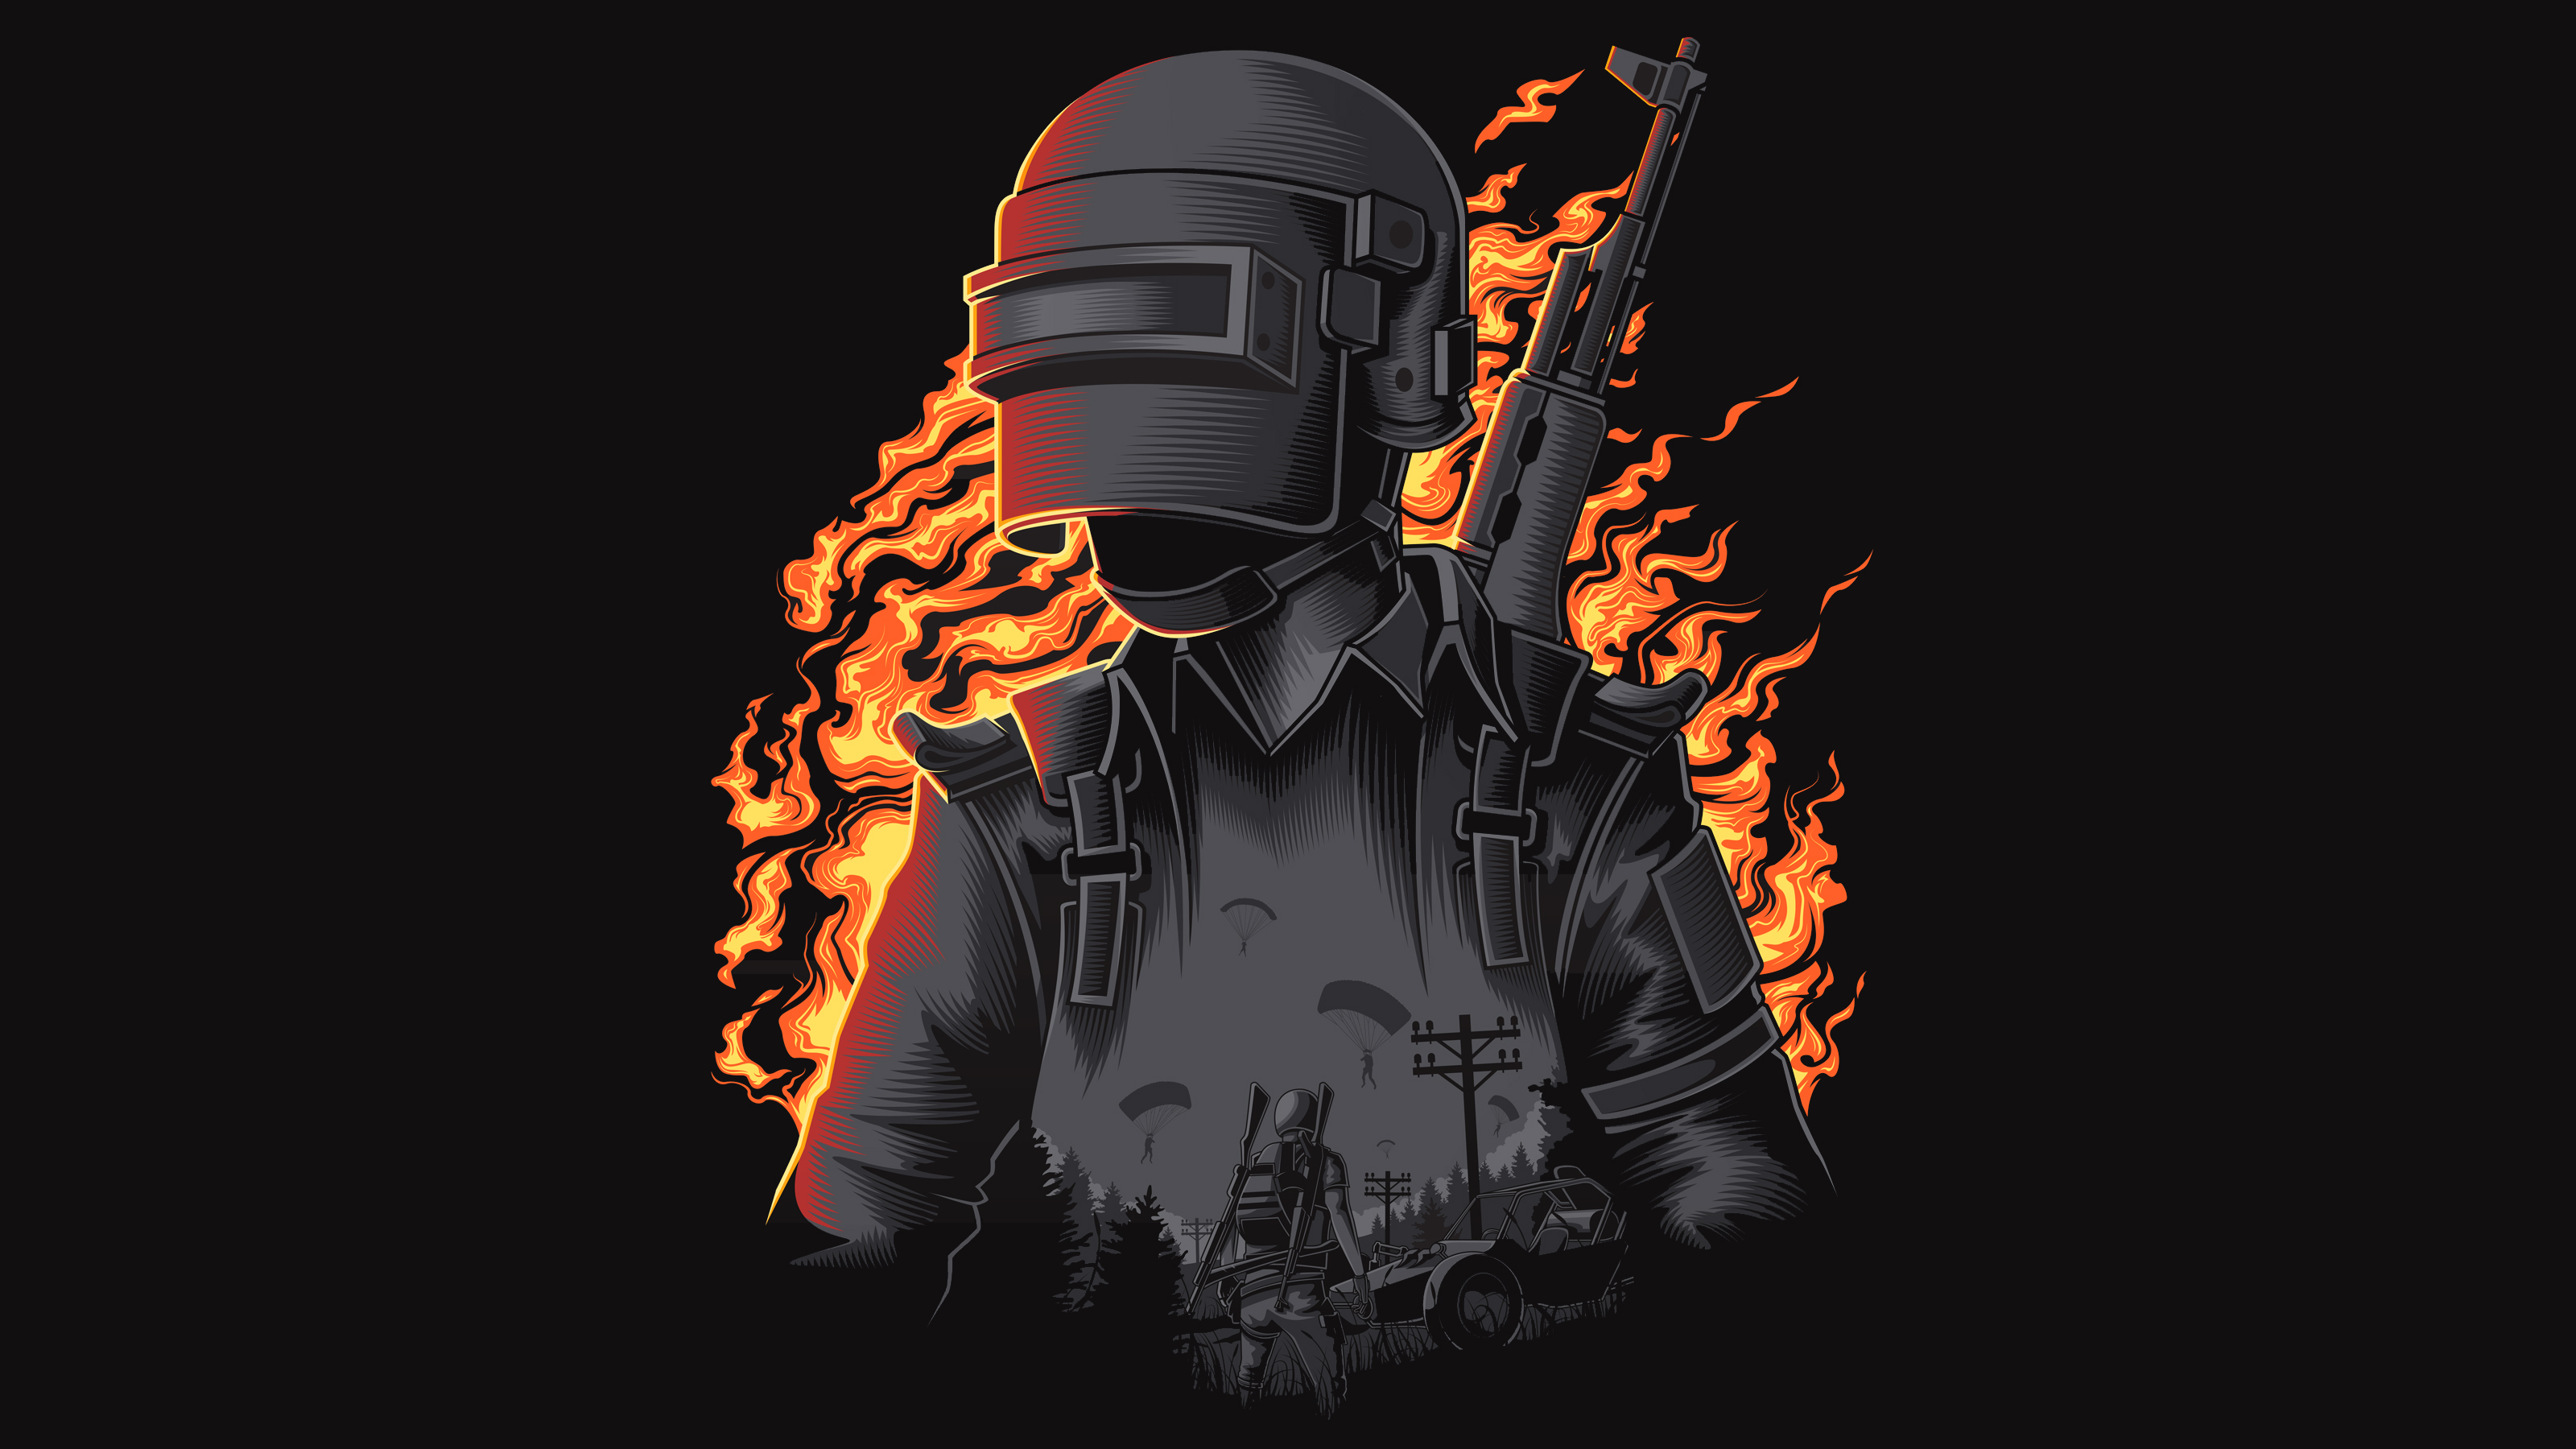 Pubg Wallpaper New Season: PUBG Dark Illustration Wallpapers